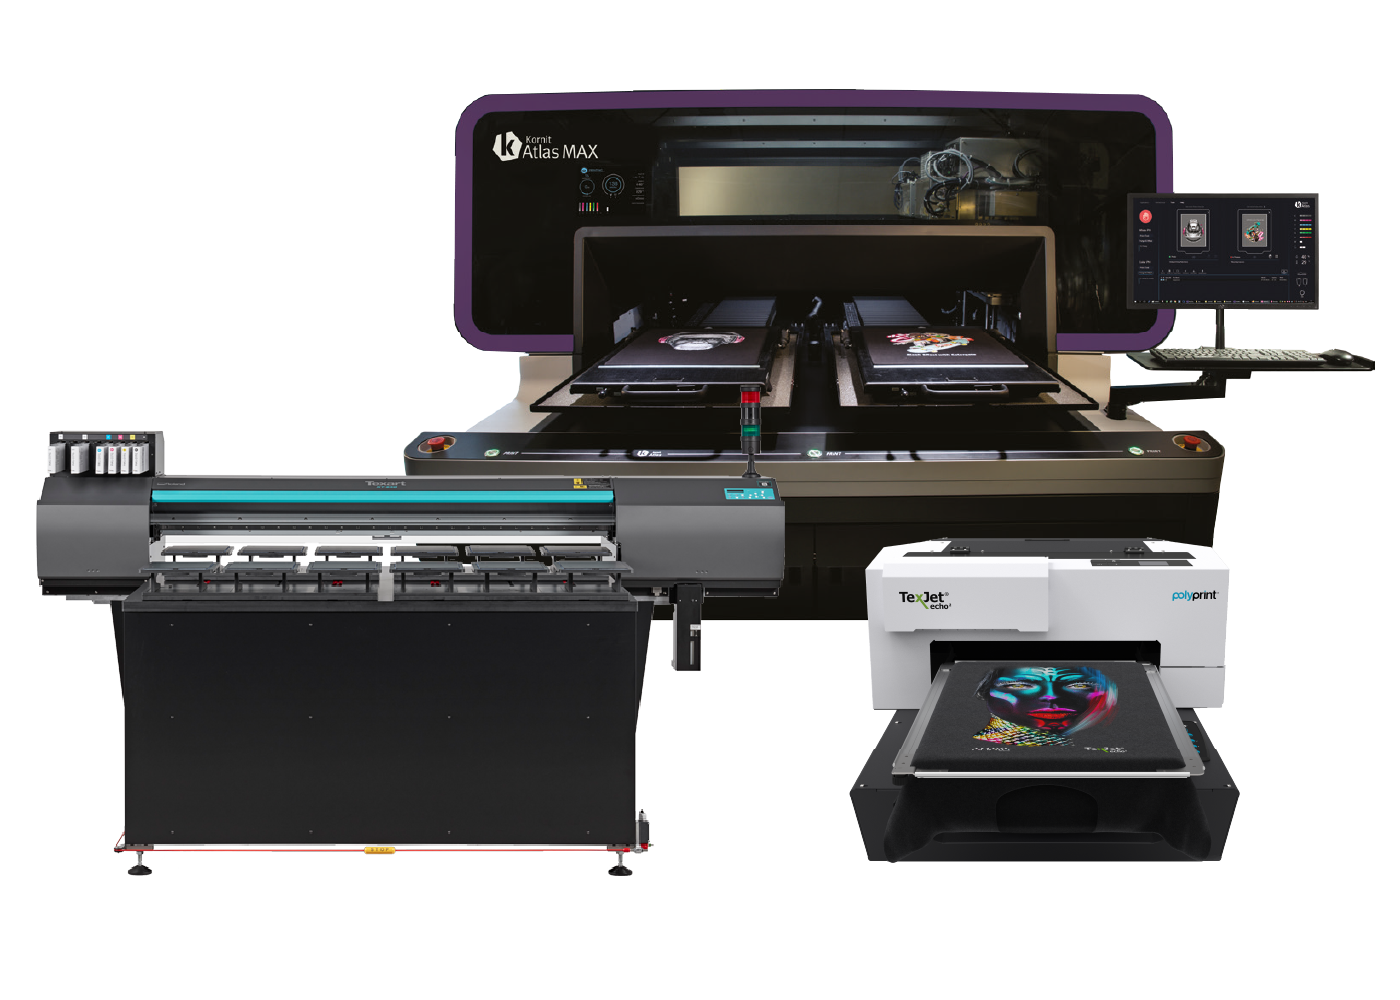 DTG Printers - Its Not One Size Fits All